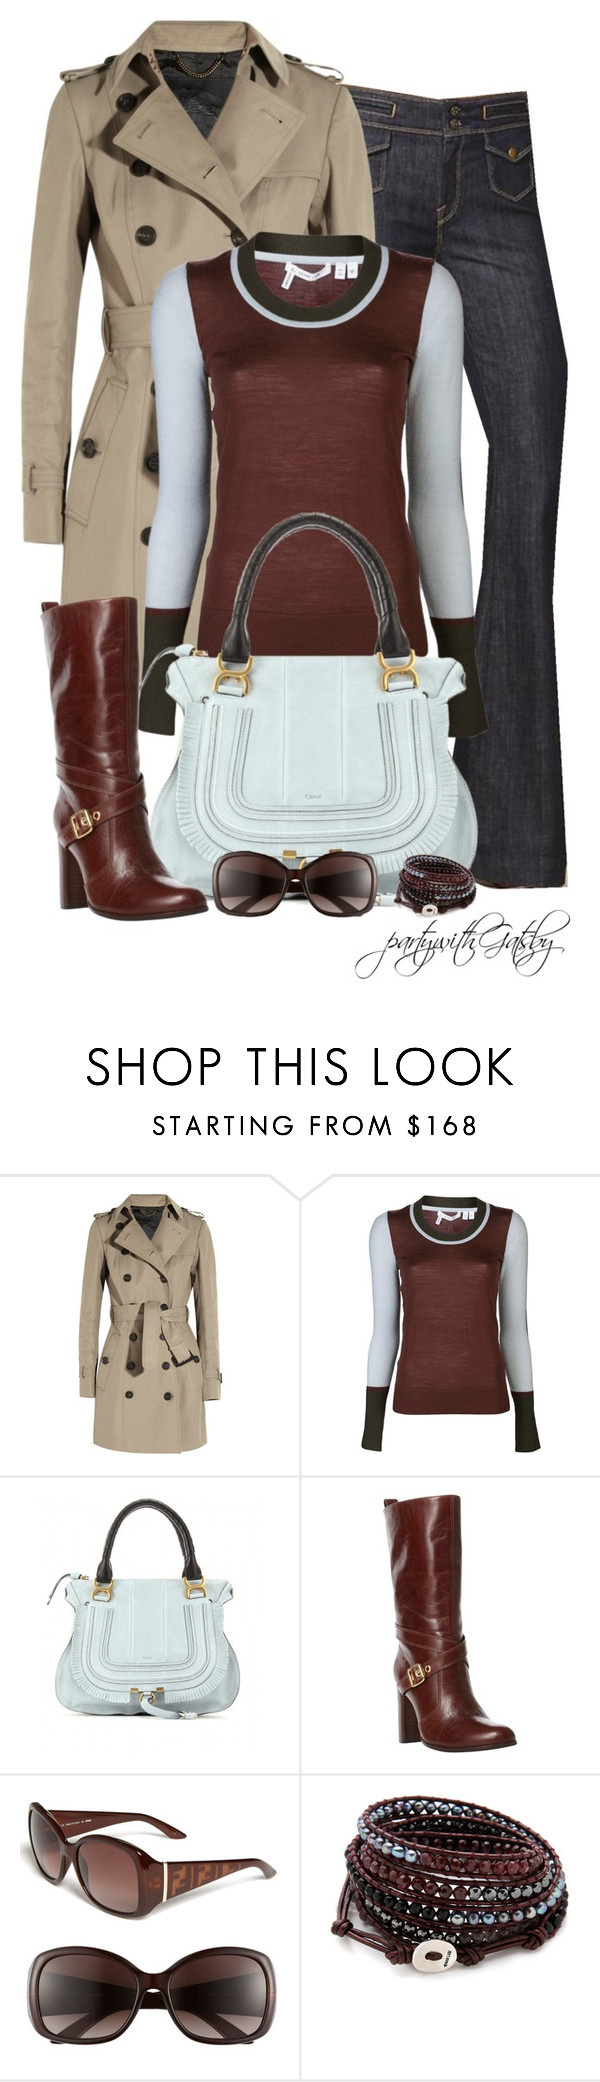 """""""Crosby by Derek Lam"""" by partywithgatsby ❤ liked on Polyvore featuring 7 For All Mankind, Burberry, 10 Crosby Derek Lam, Chloé, Dune, Fendi and Chan Luu"""